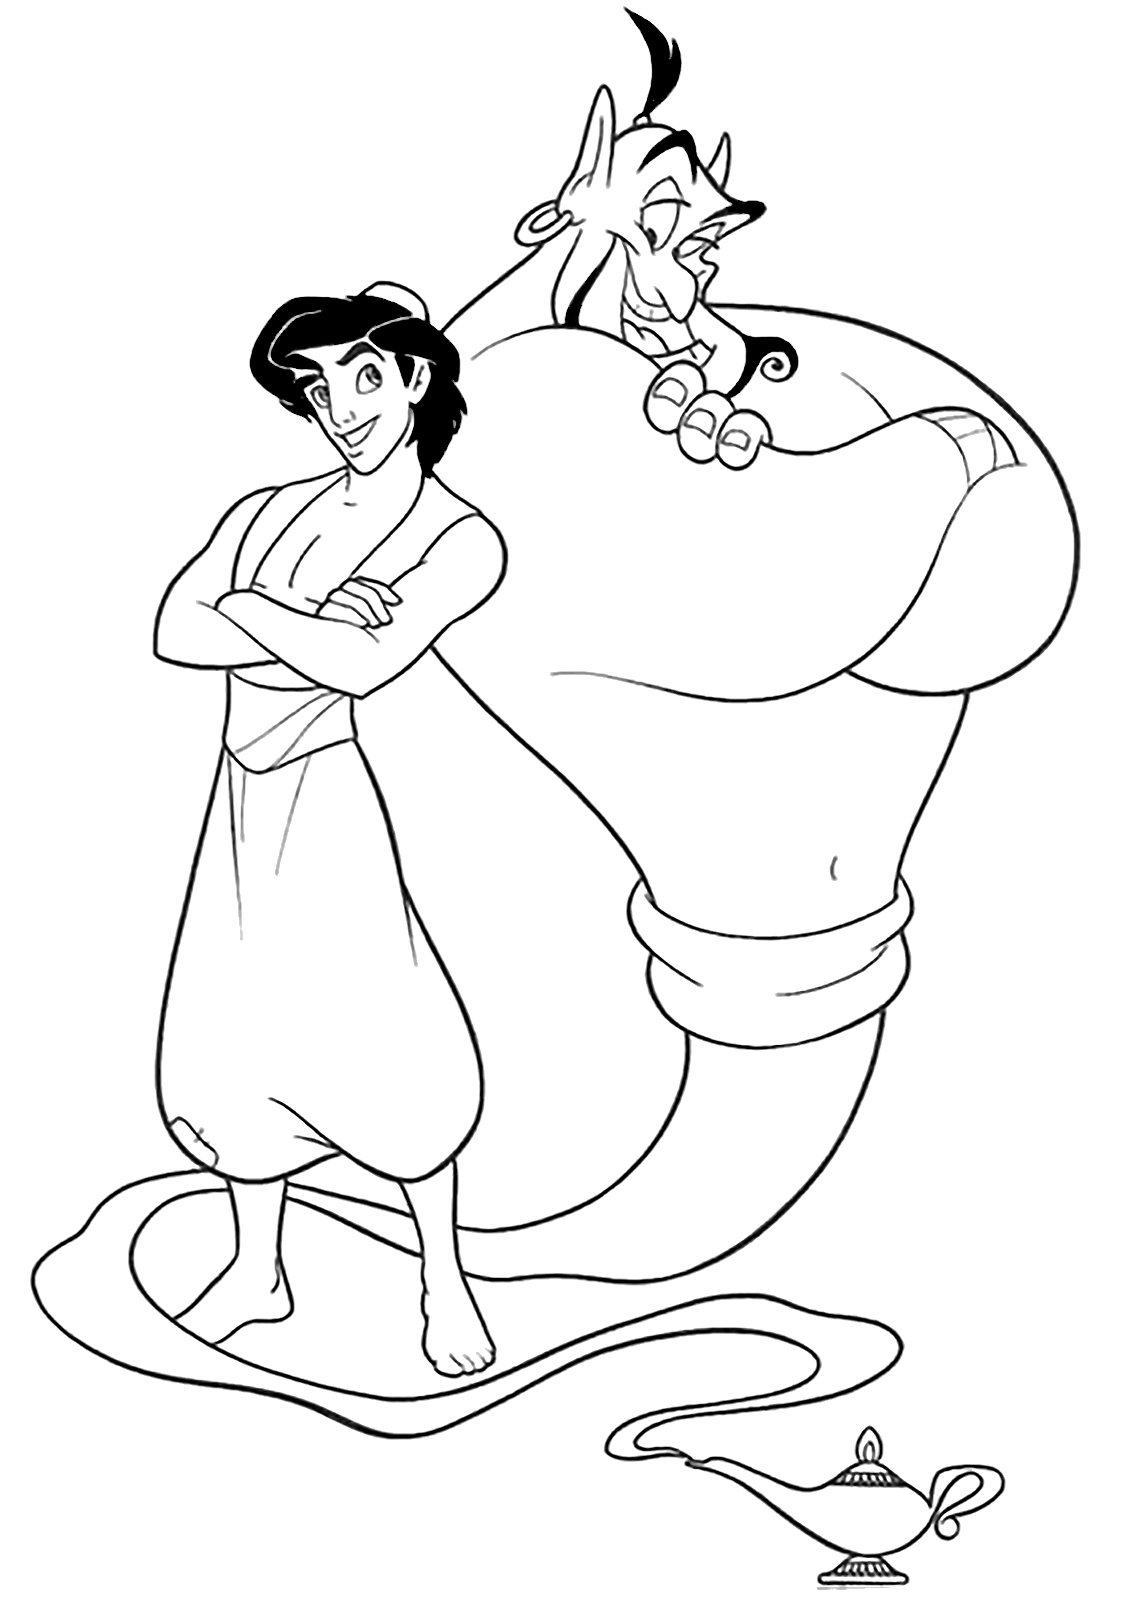 Aladdin - Aladdin and the genius of the lamp